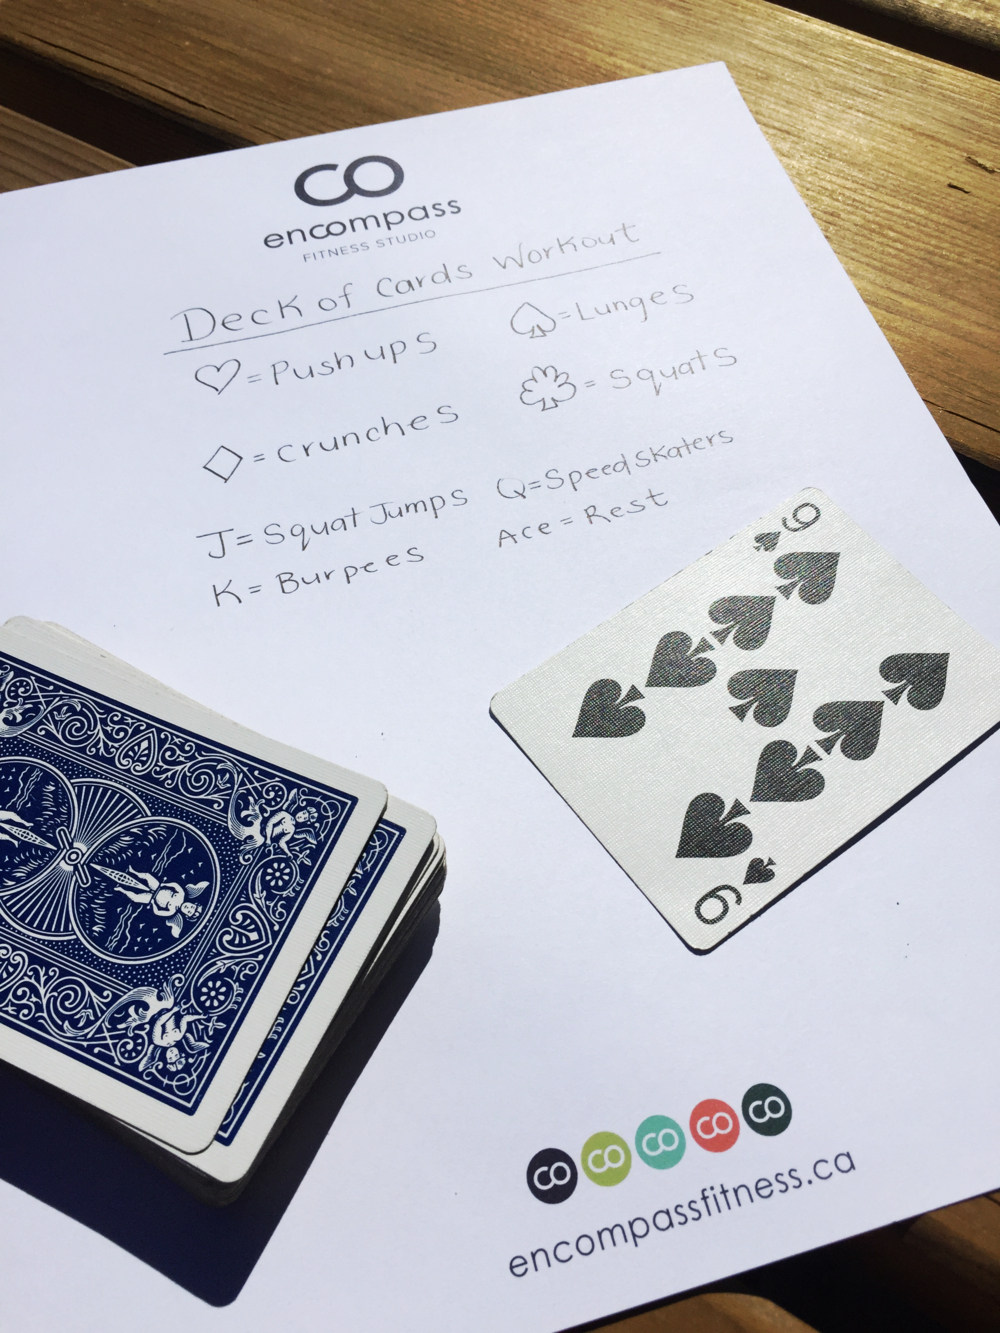 Deck of Cards - one of our favourites! For example, a nine of spades would be 9 lunges. Finish your lunges as fast as you can, and flip the next card!